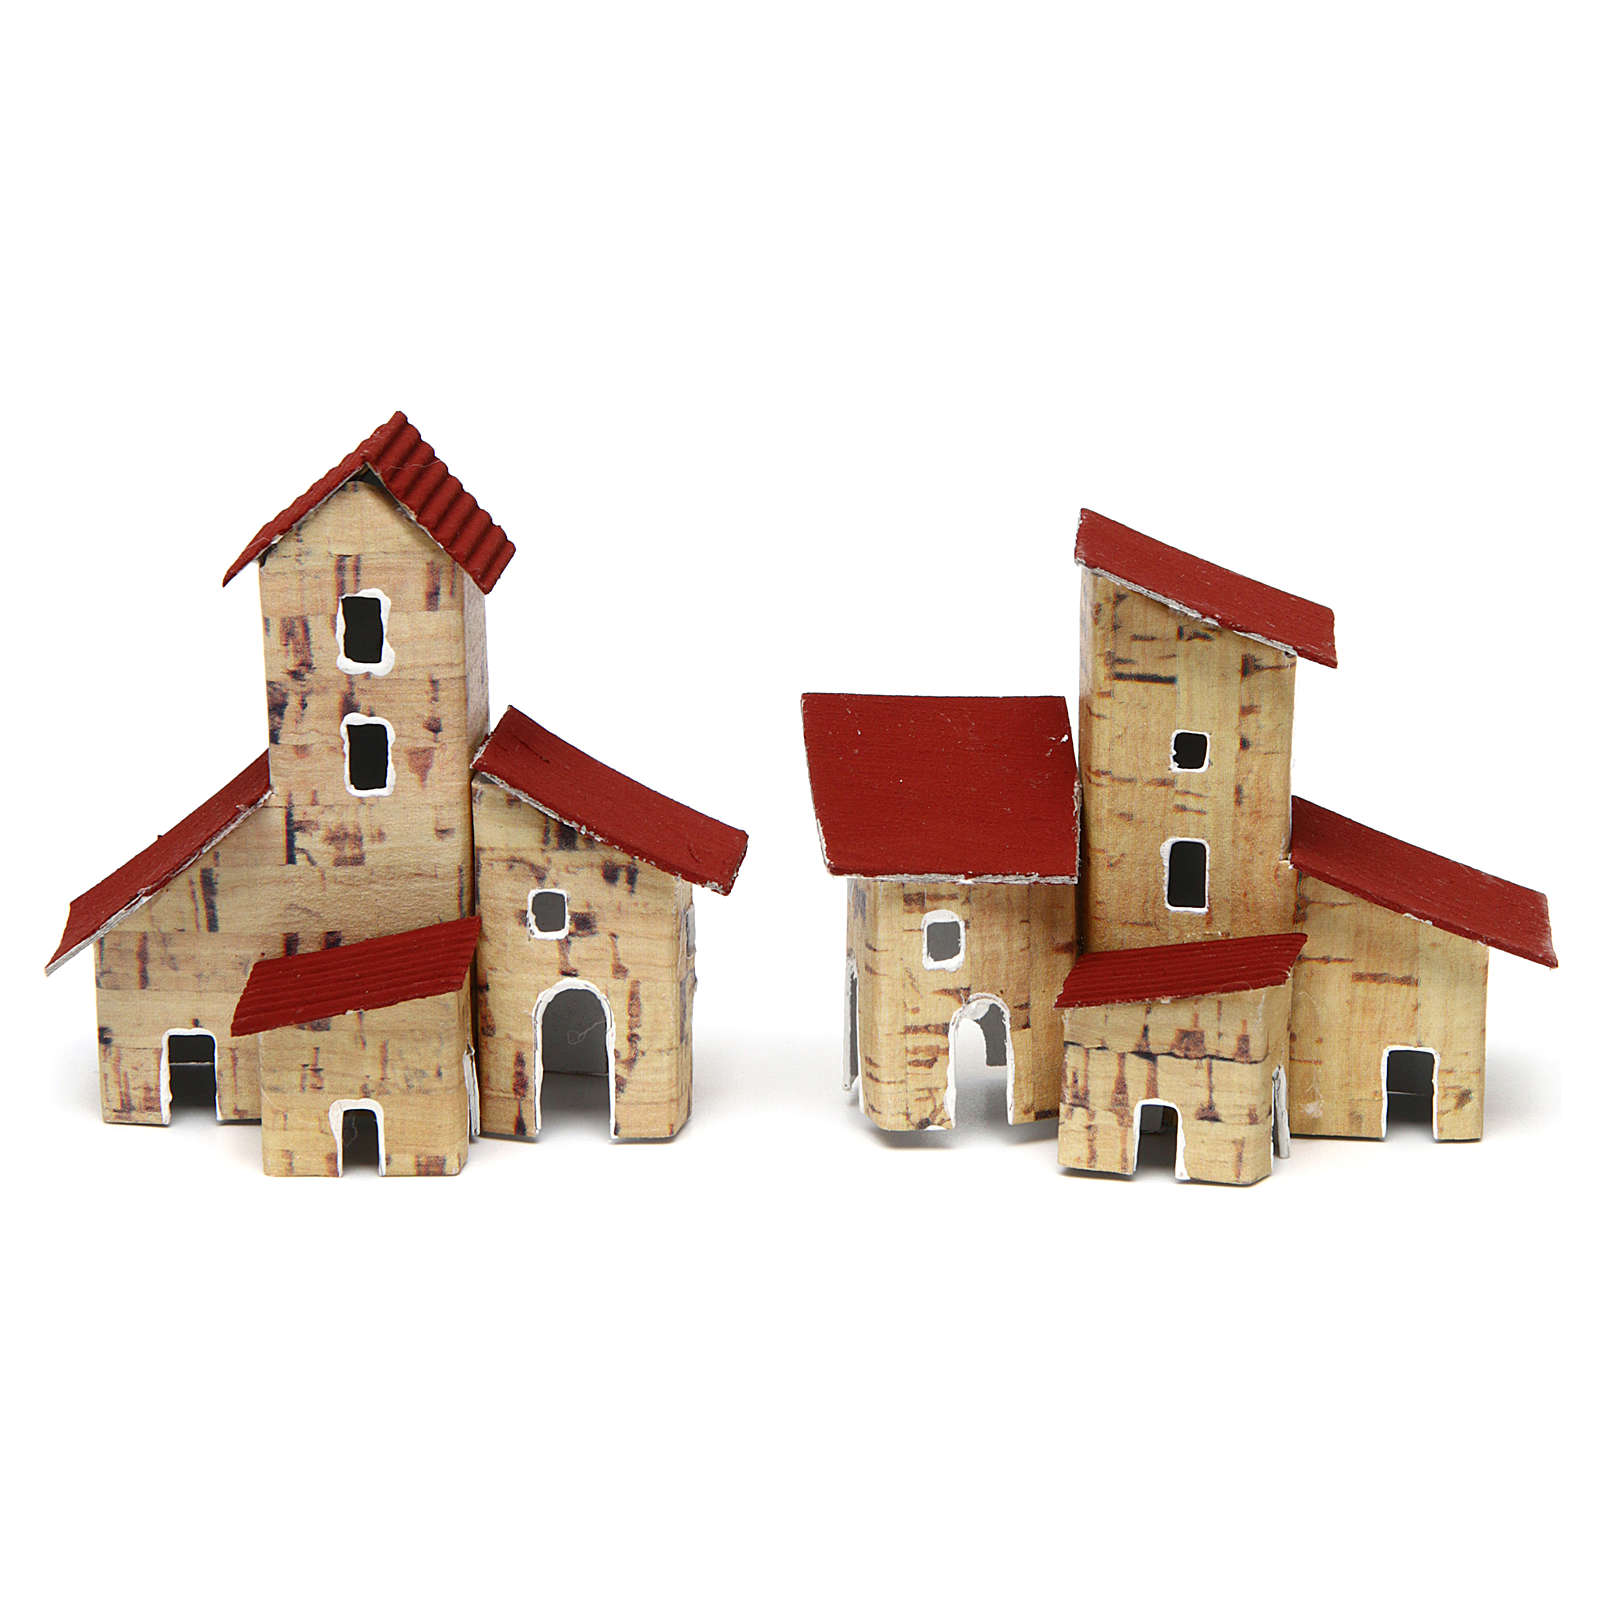 Nativity Scene houses 2 pieces 6.5x4x7 cm 4